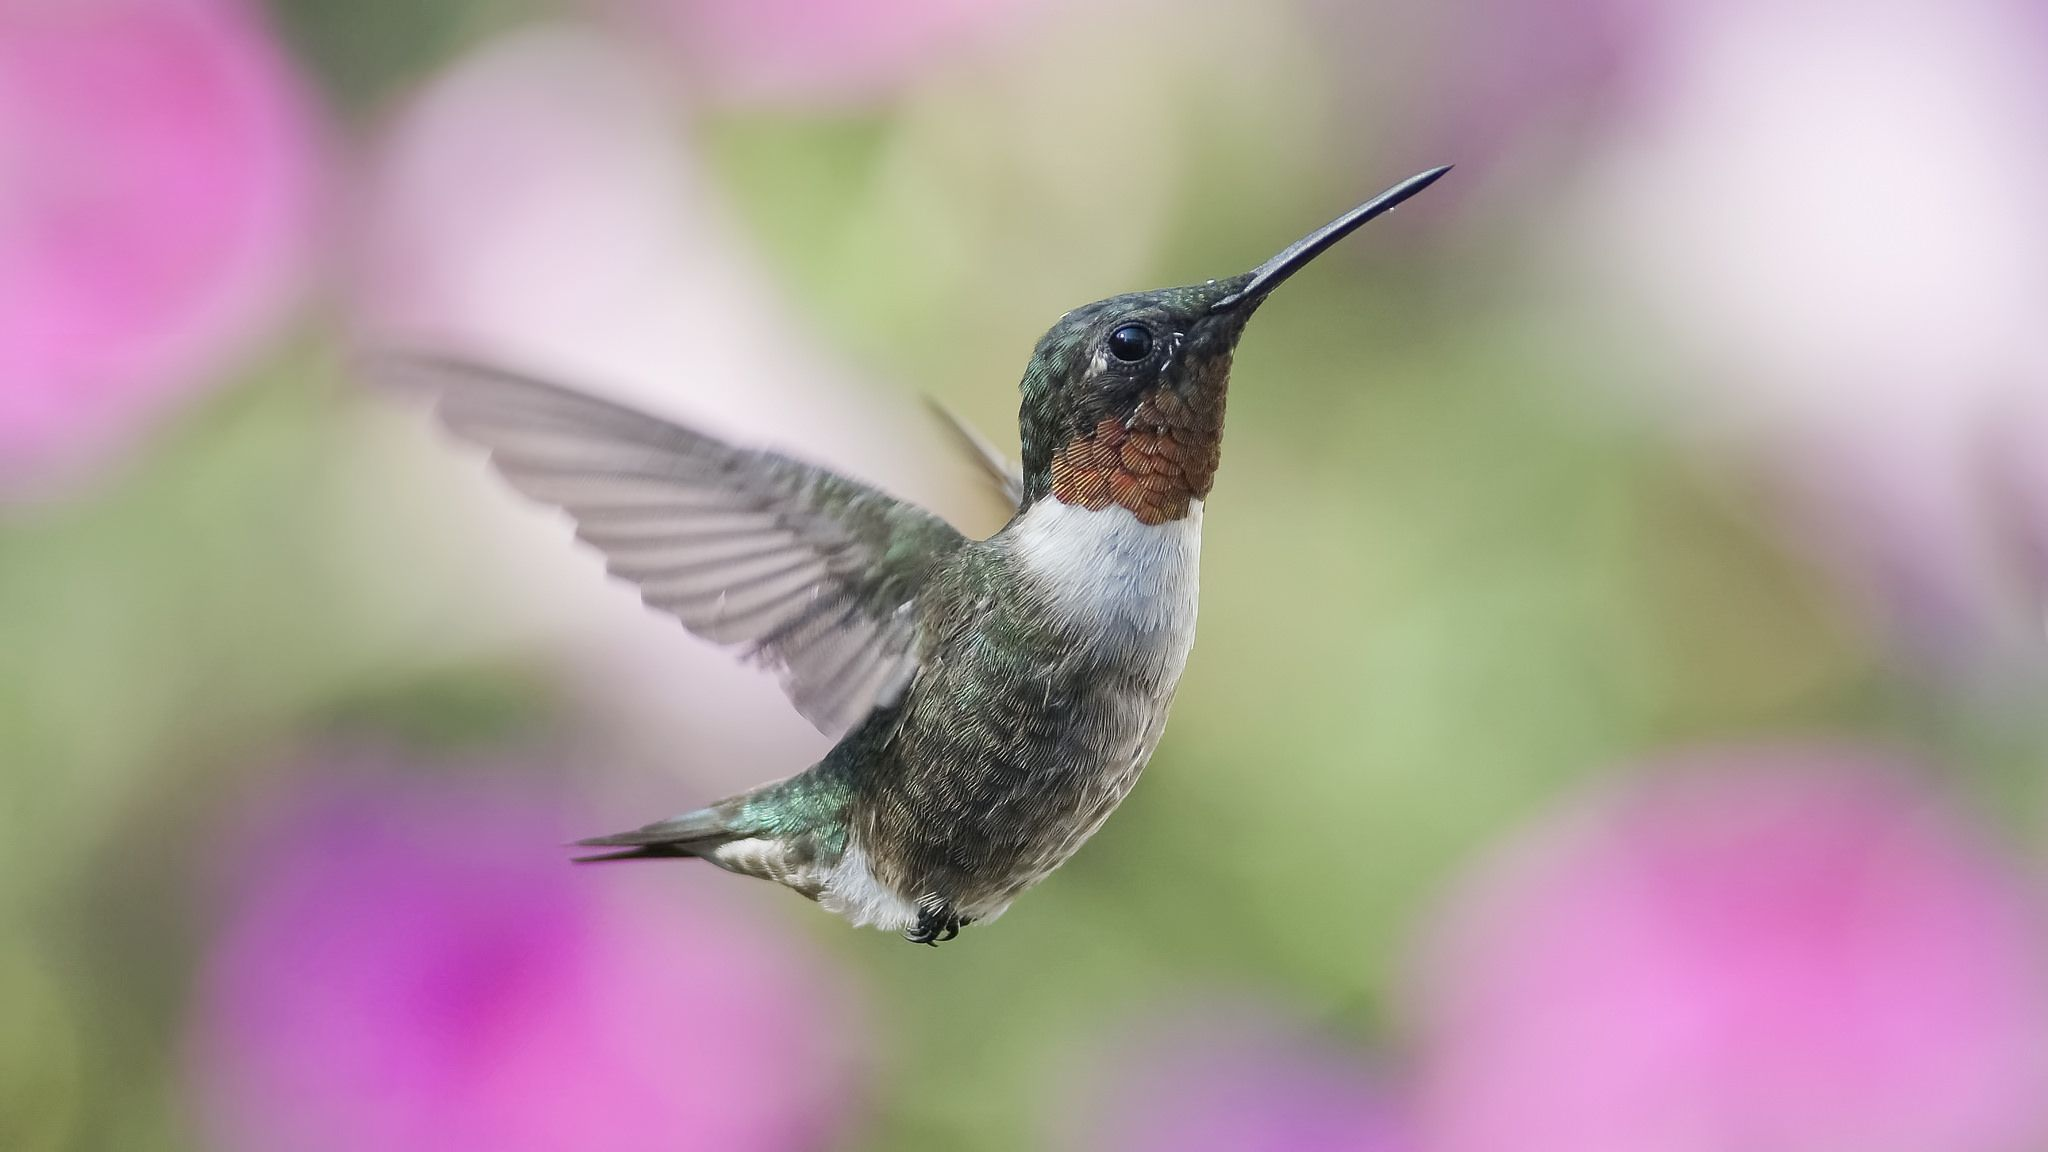 https://flic.kr/p/H3zzKV | Joy in the Garden_DSC0163 | Adult male Ruby-throated Hummingbird flying in the garden.